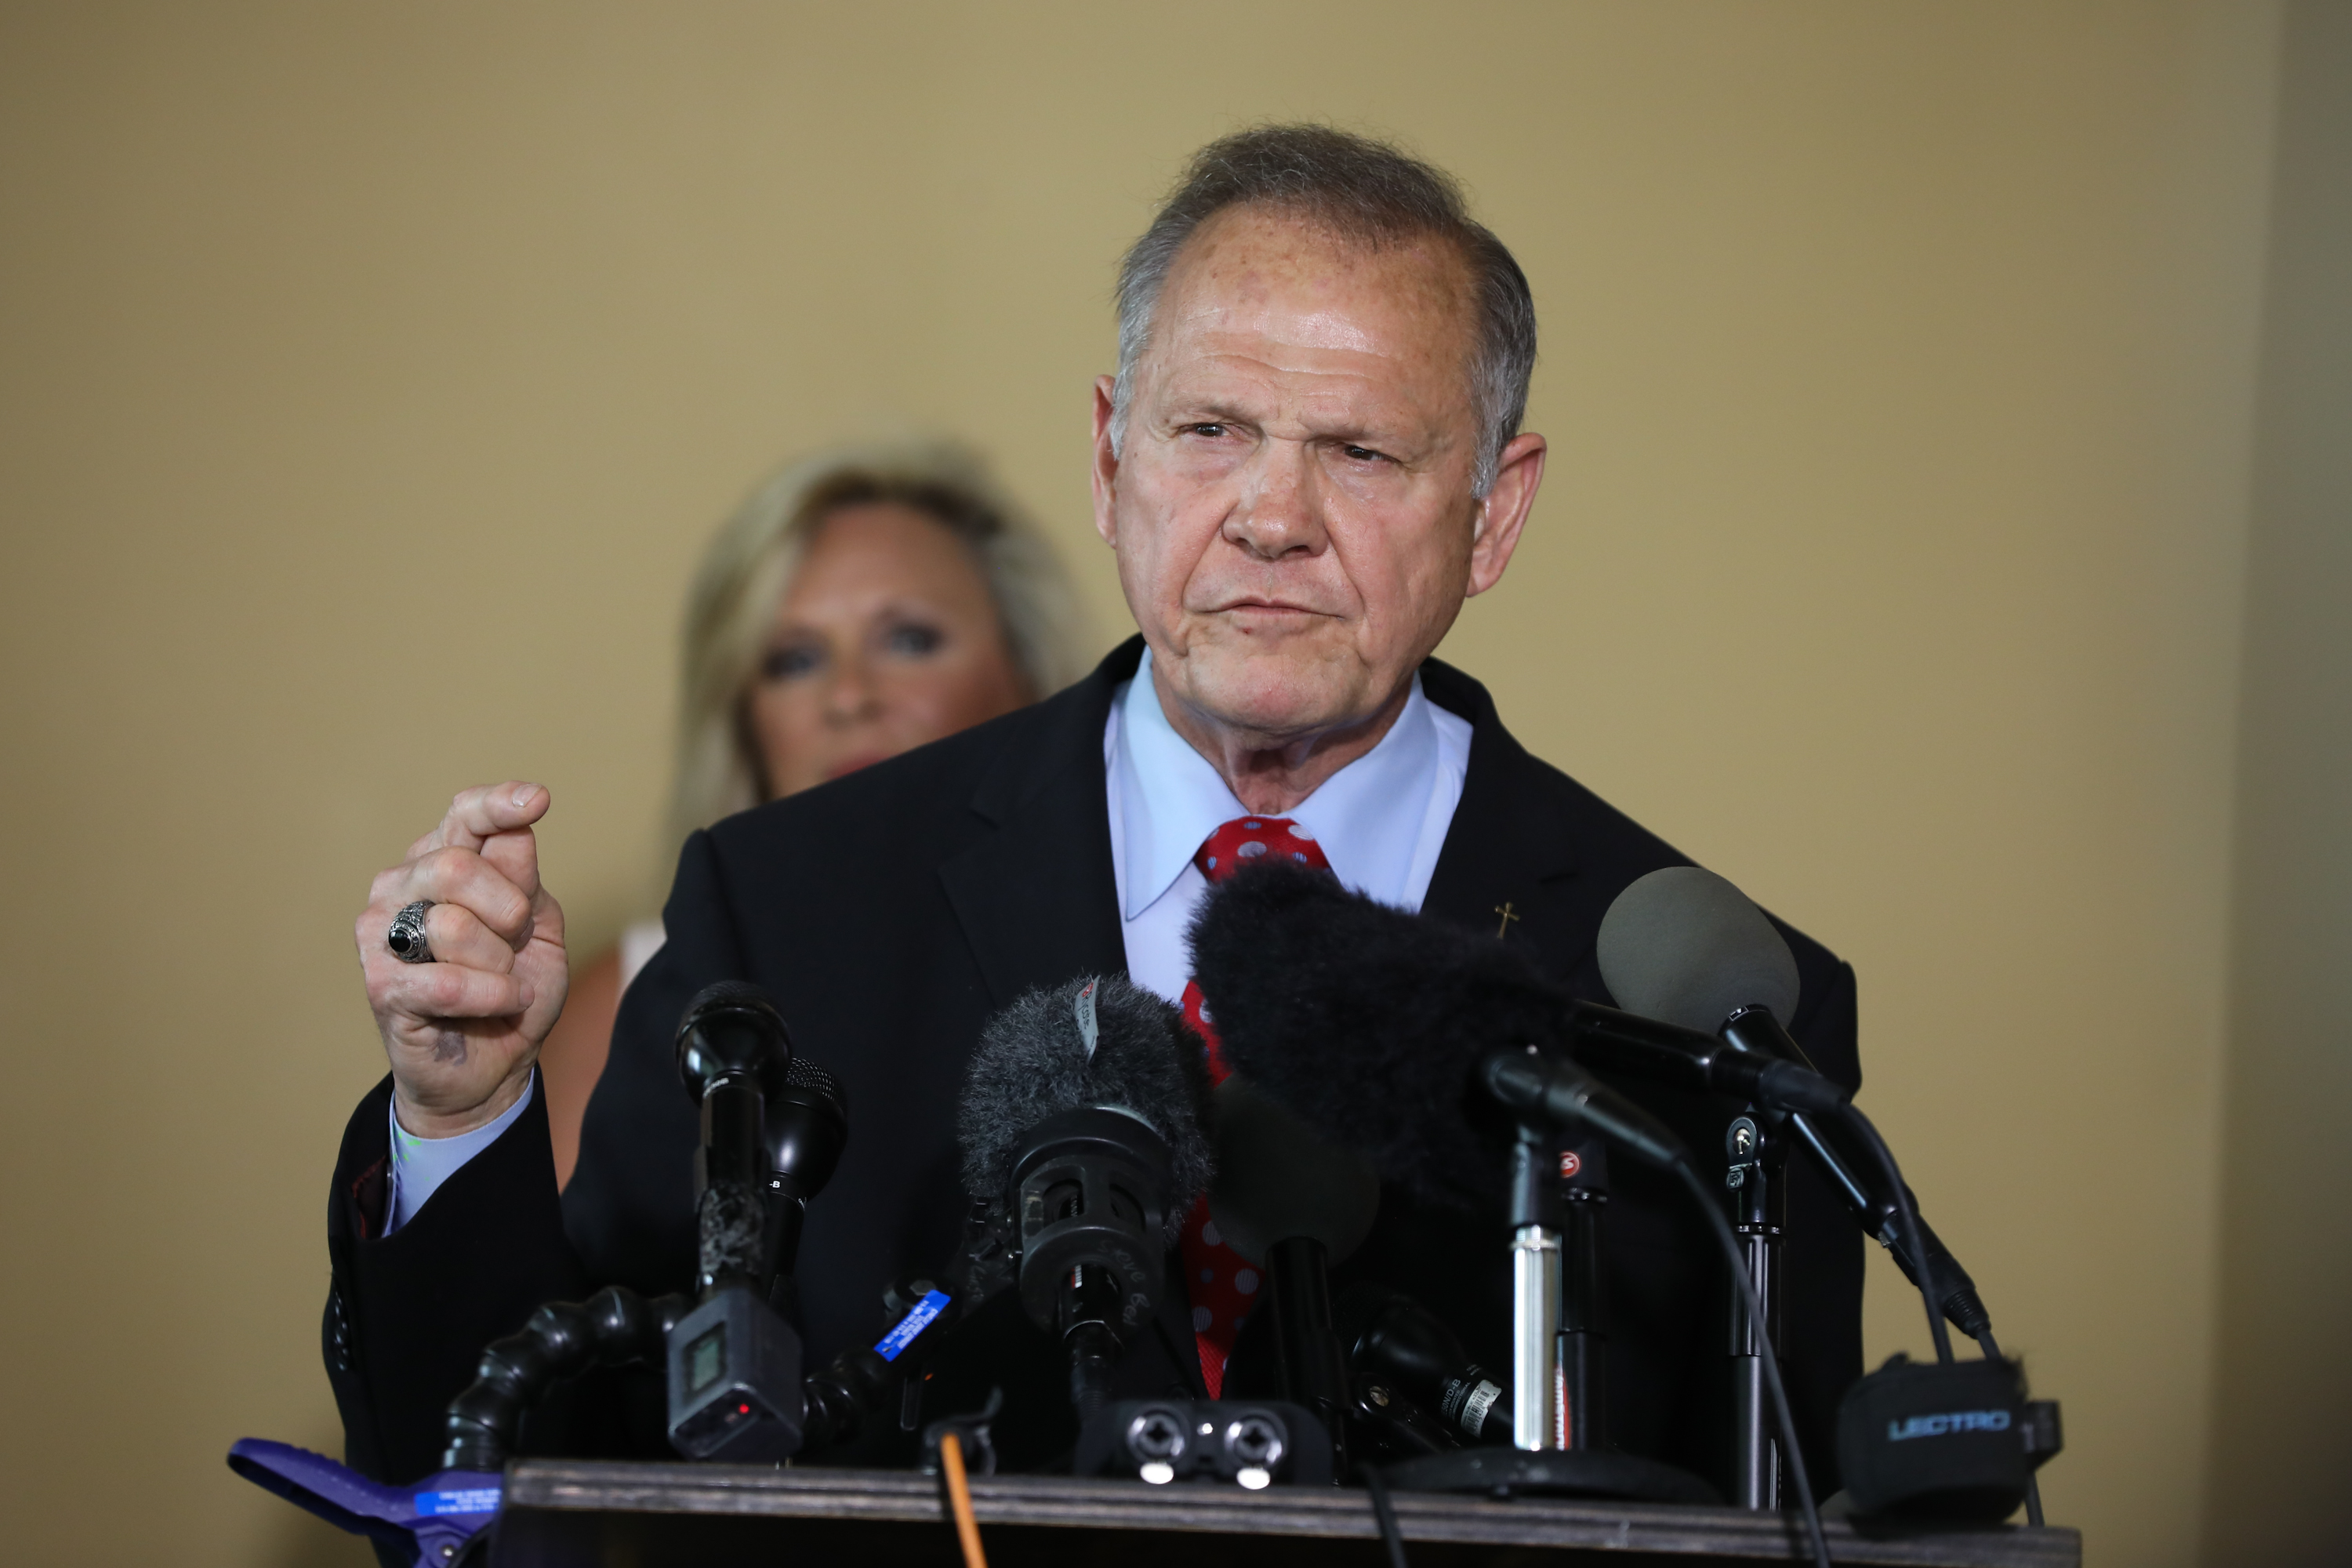 Roy Moore announces his plans to run for U.S. Senate in 2020 on June 20, 2019